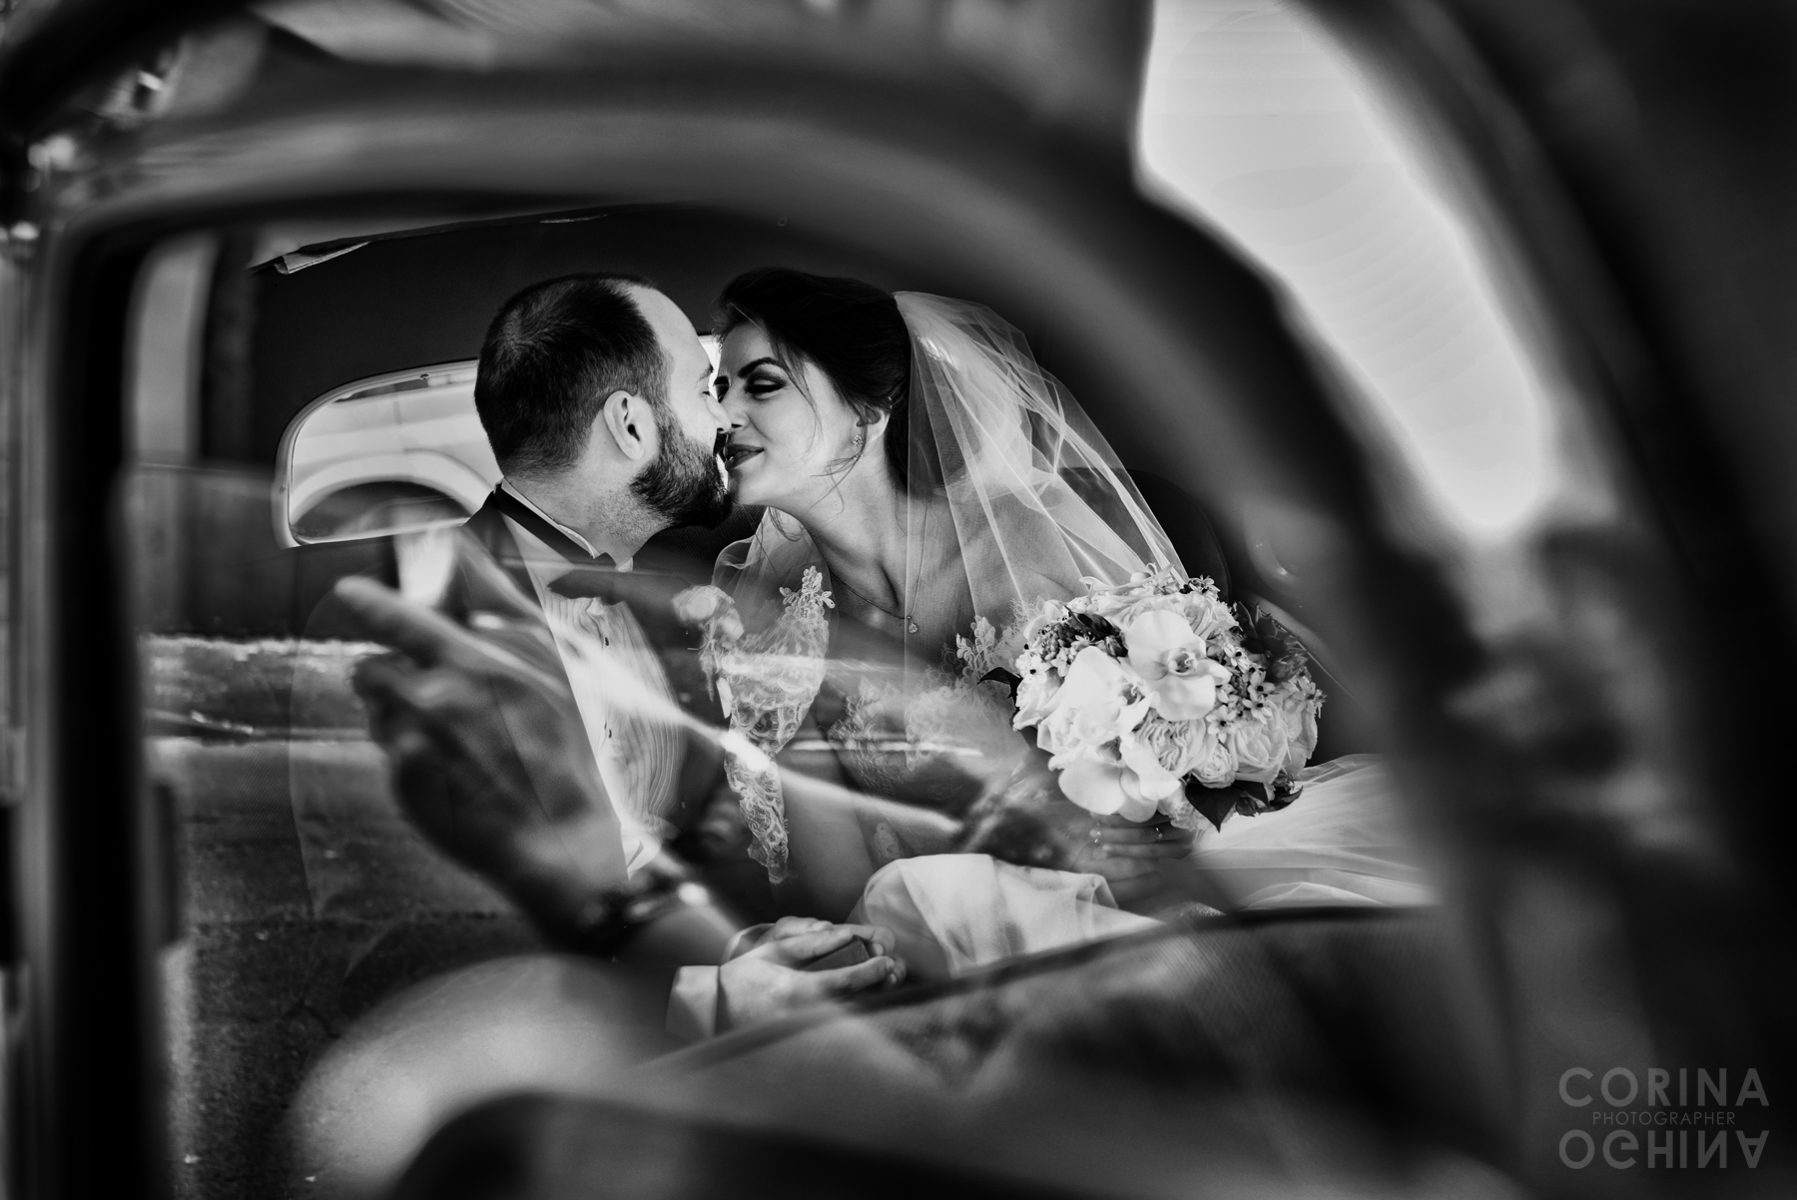 Newlyweds kissing in the car as someone takes a photograph